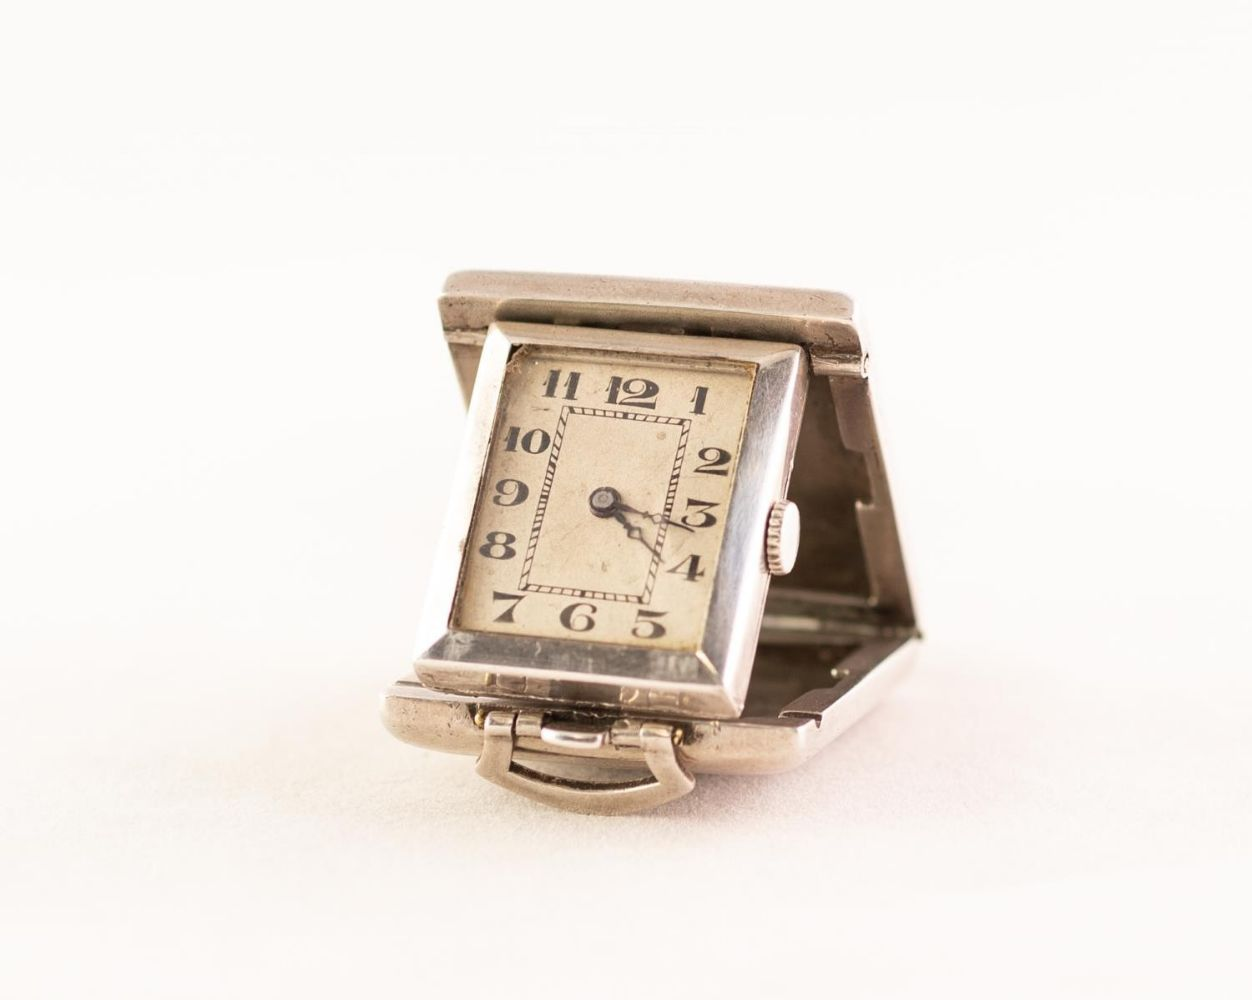 Jewellery, Silver, Watches & Gold Coins - Capes Dunn